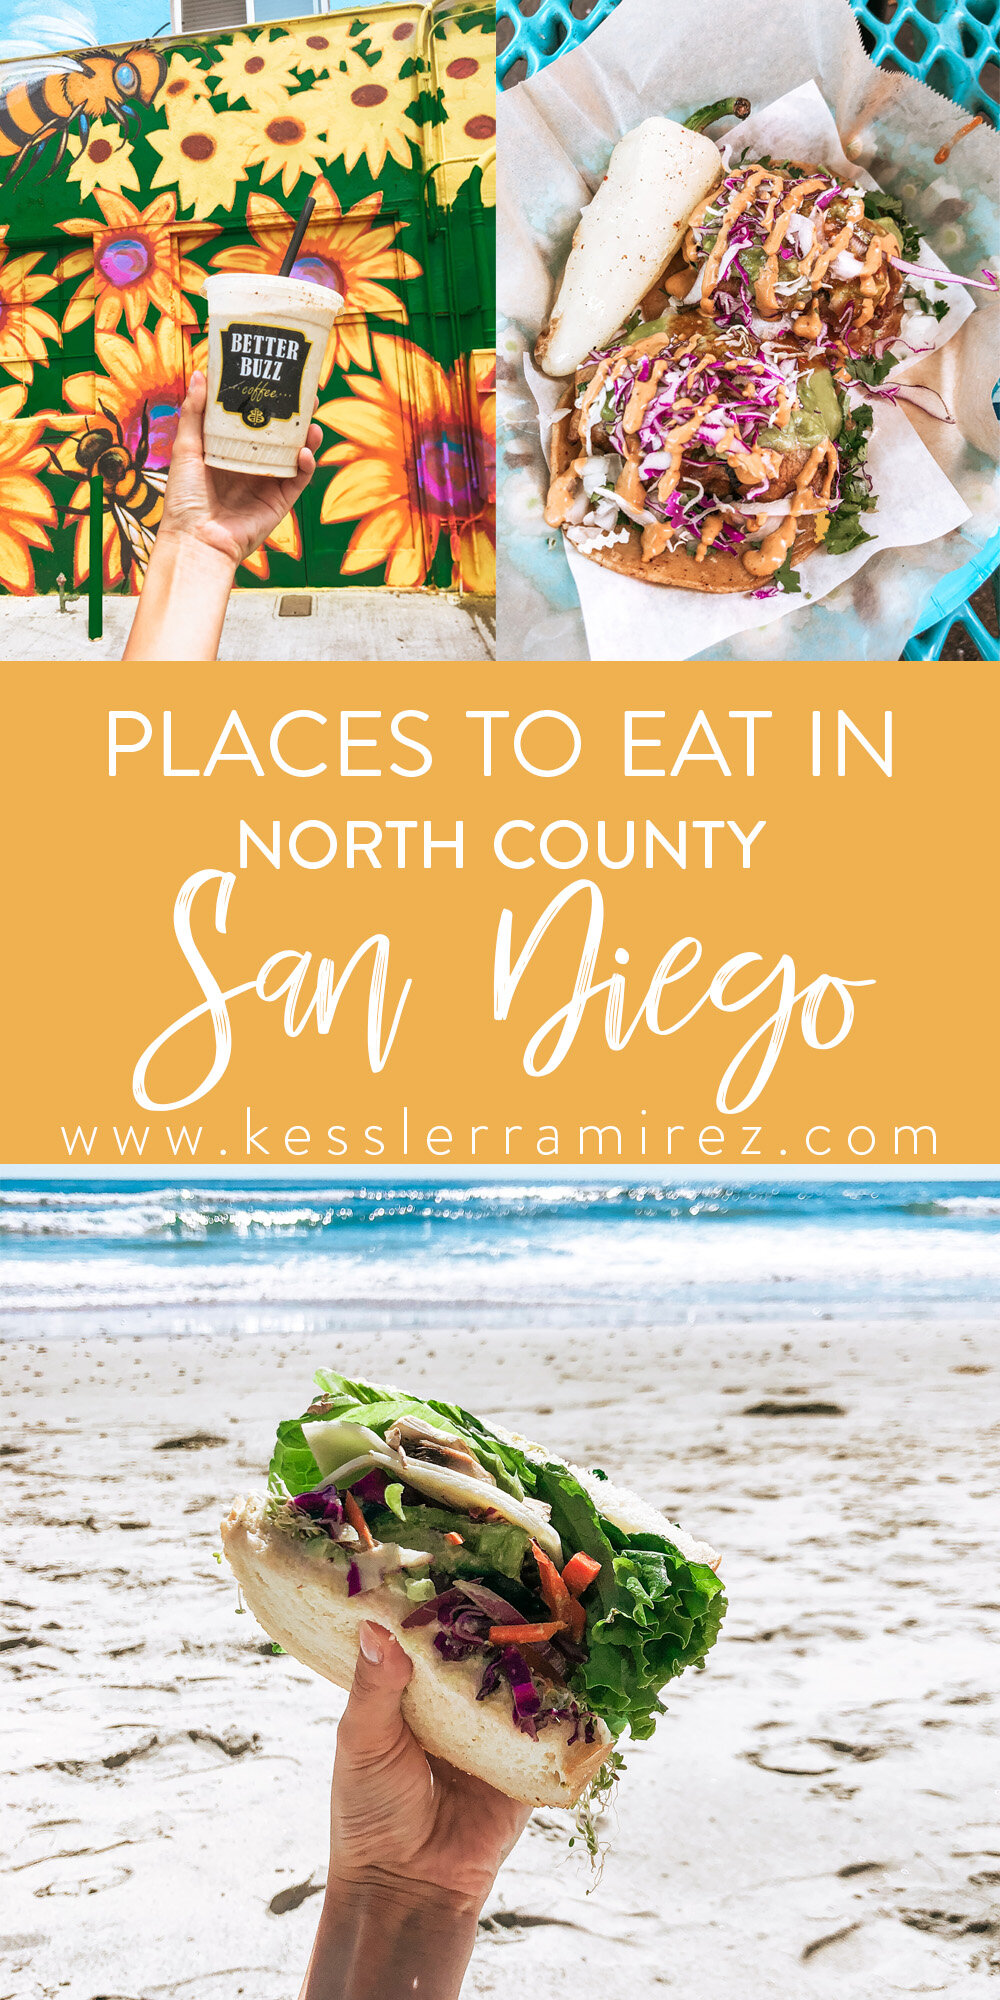 Places to Eat in North County San Diego